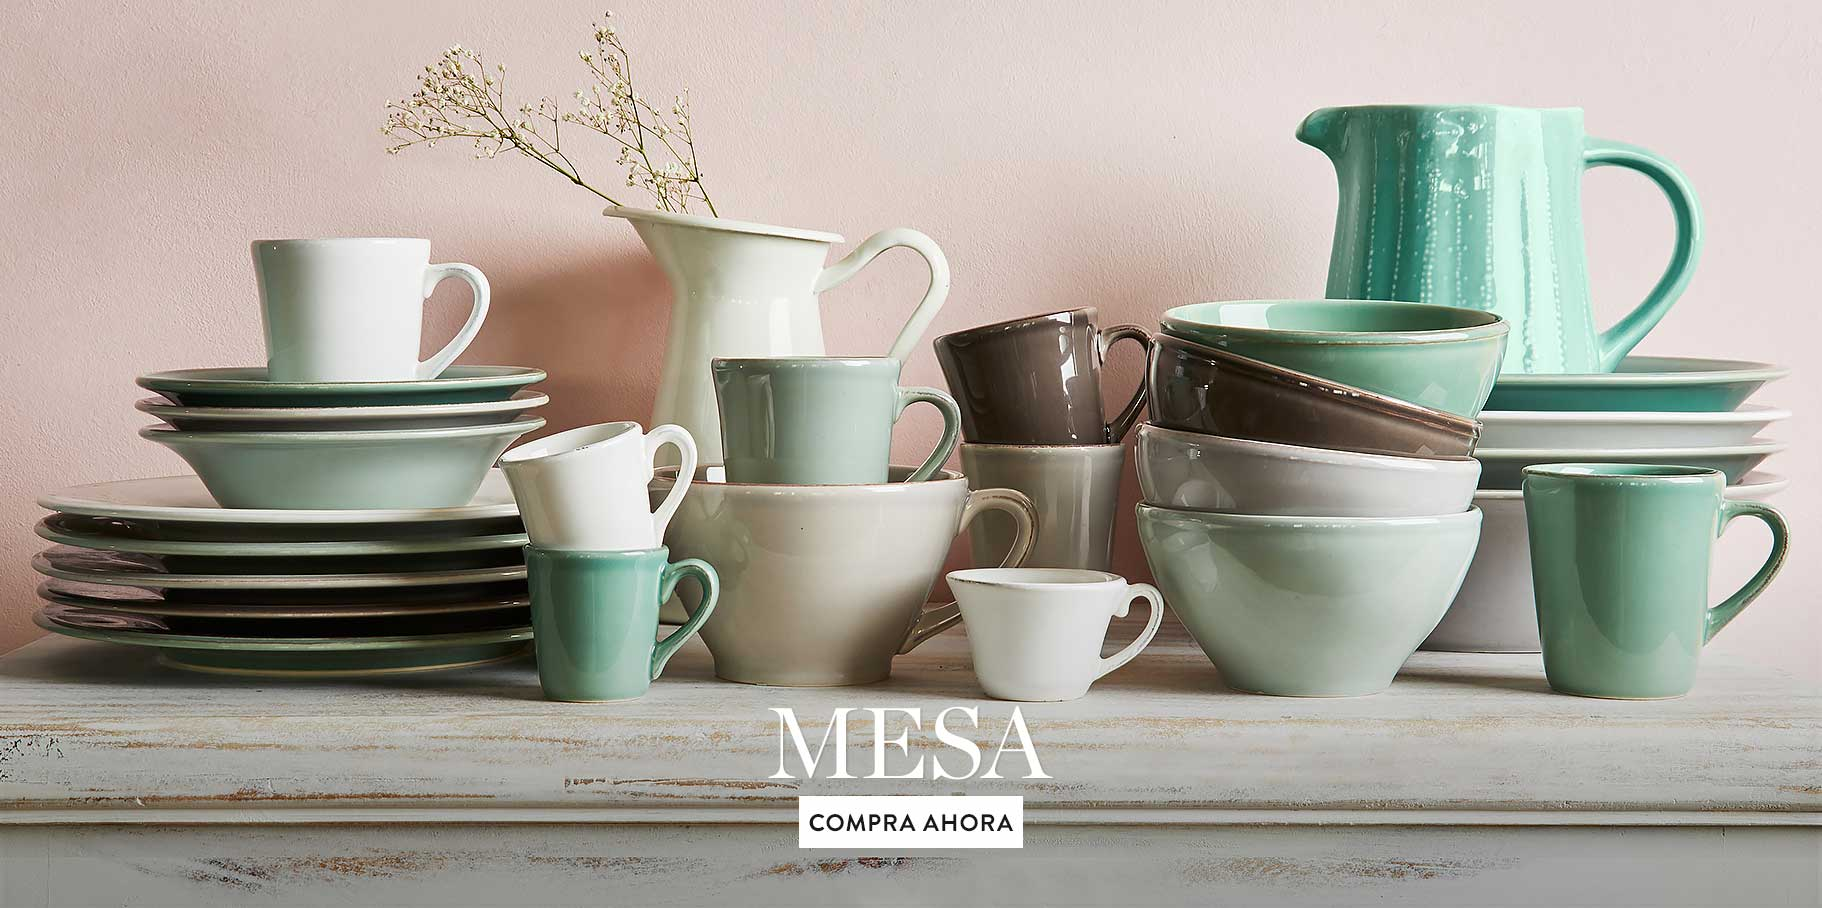 Home-Mesa-vajillas